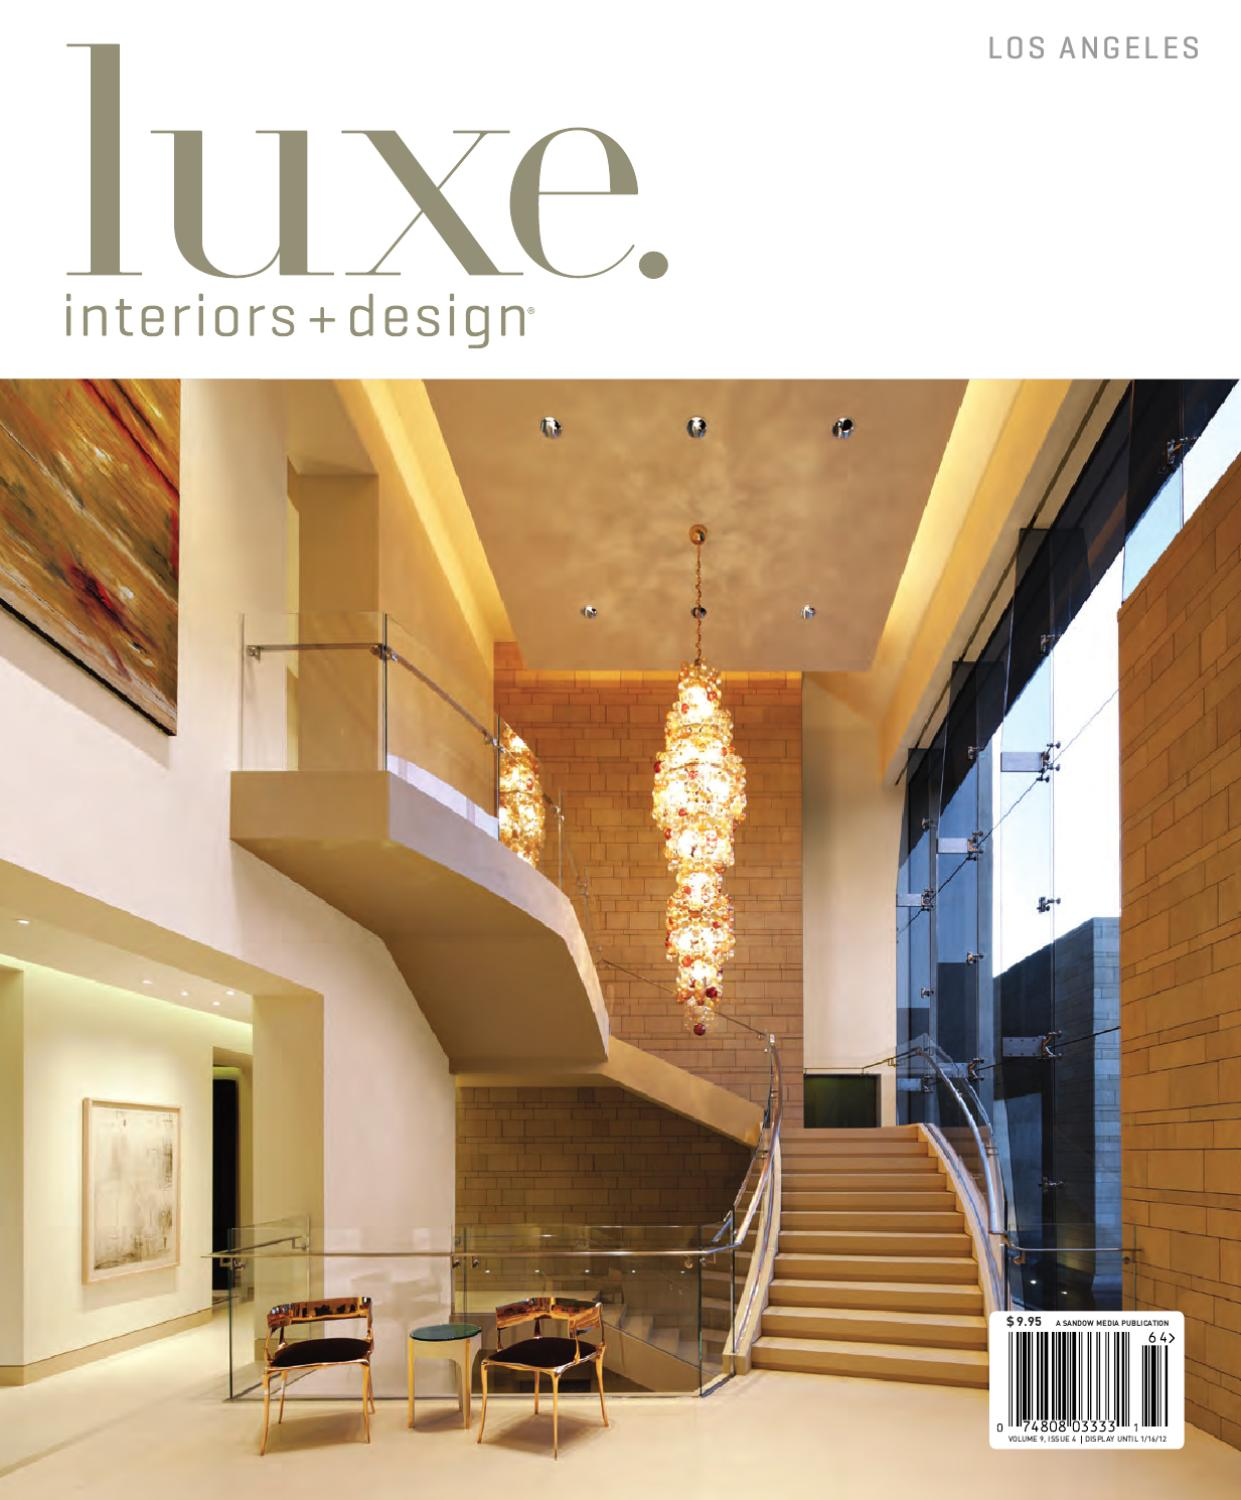 Luxe interiors design los angeles 17 by sandow media issuu for Interior design los angeles